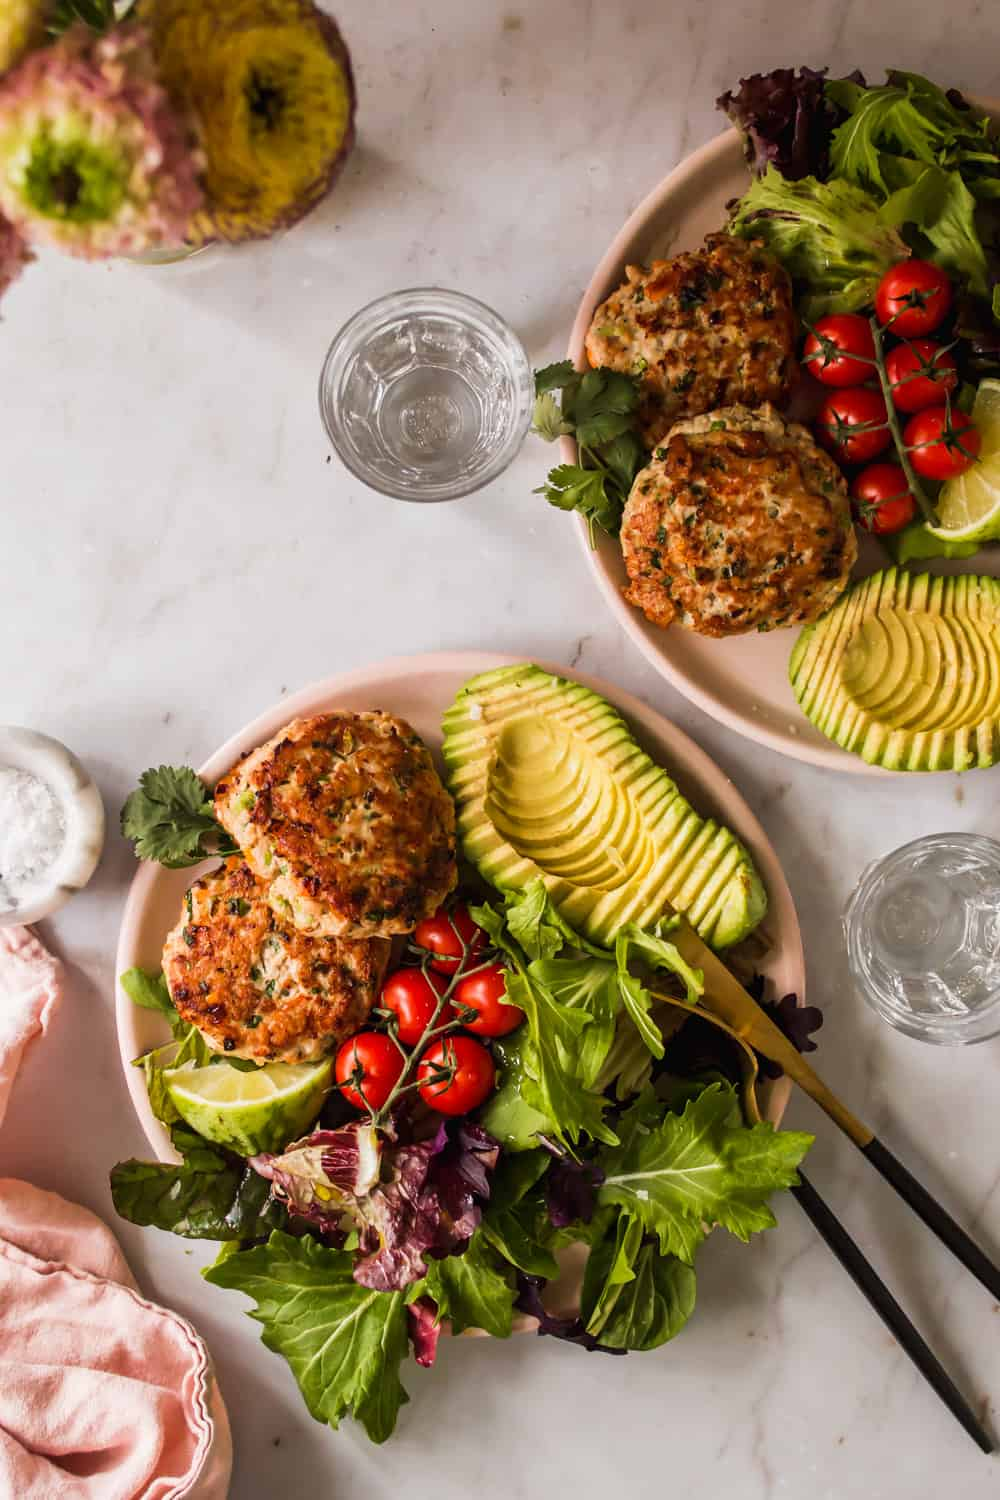 2 pink plates with salad, chicken burgers, and avocado on each